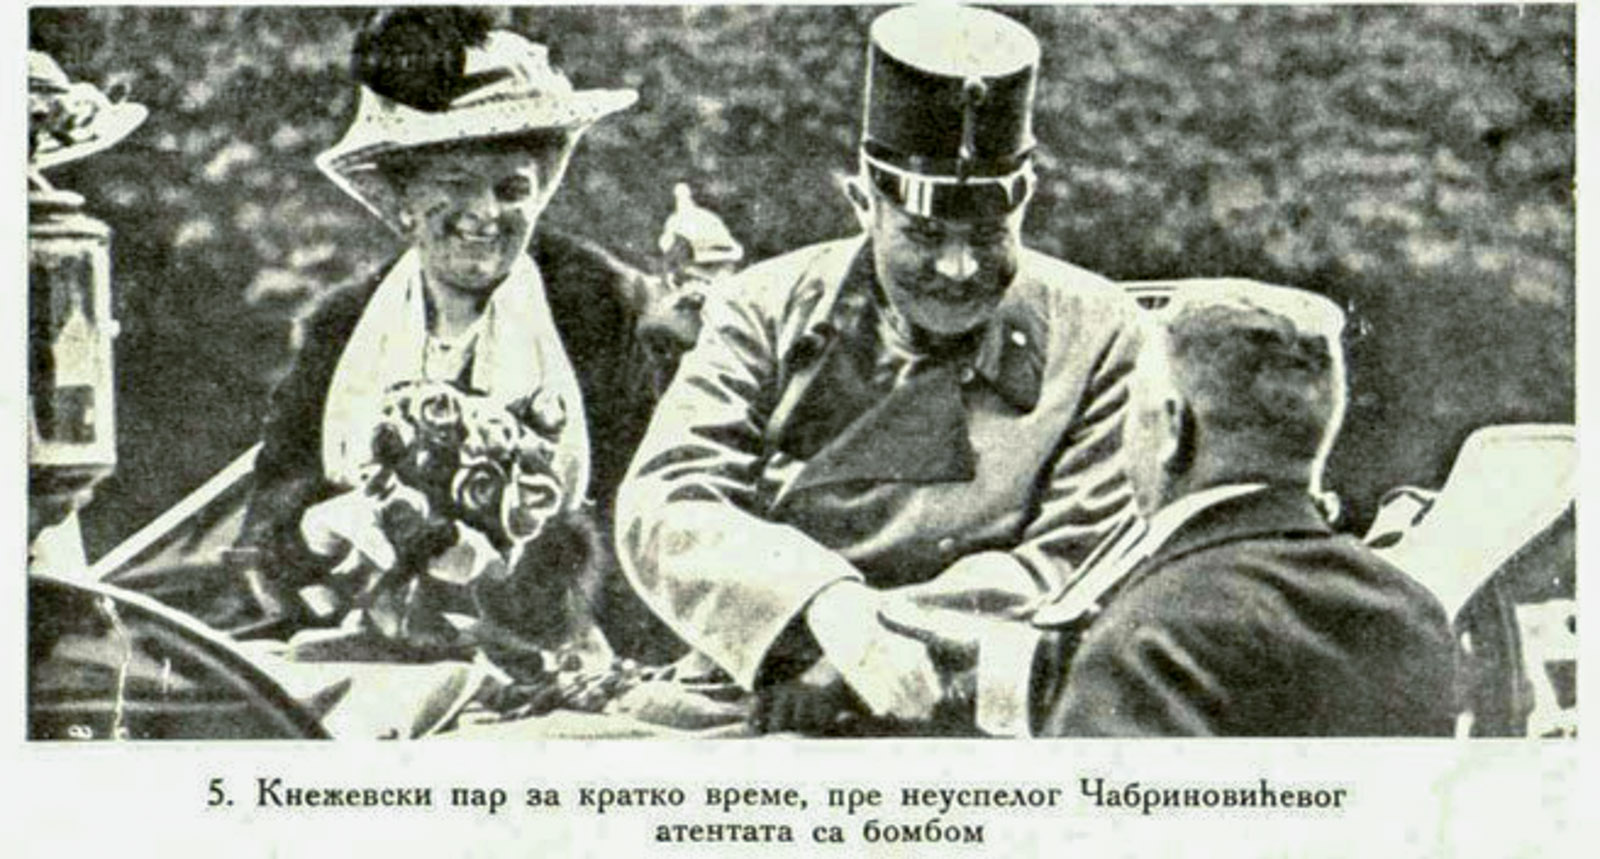 the assassination of franz ferdinand and Assassination by serbian nationalist gavrilo princip, june 28, 1914 the  assassination of archduke franz ferdinand and his wife is viewed.